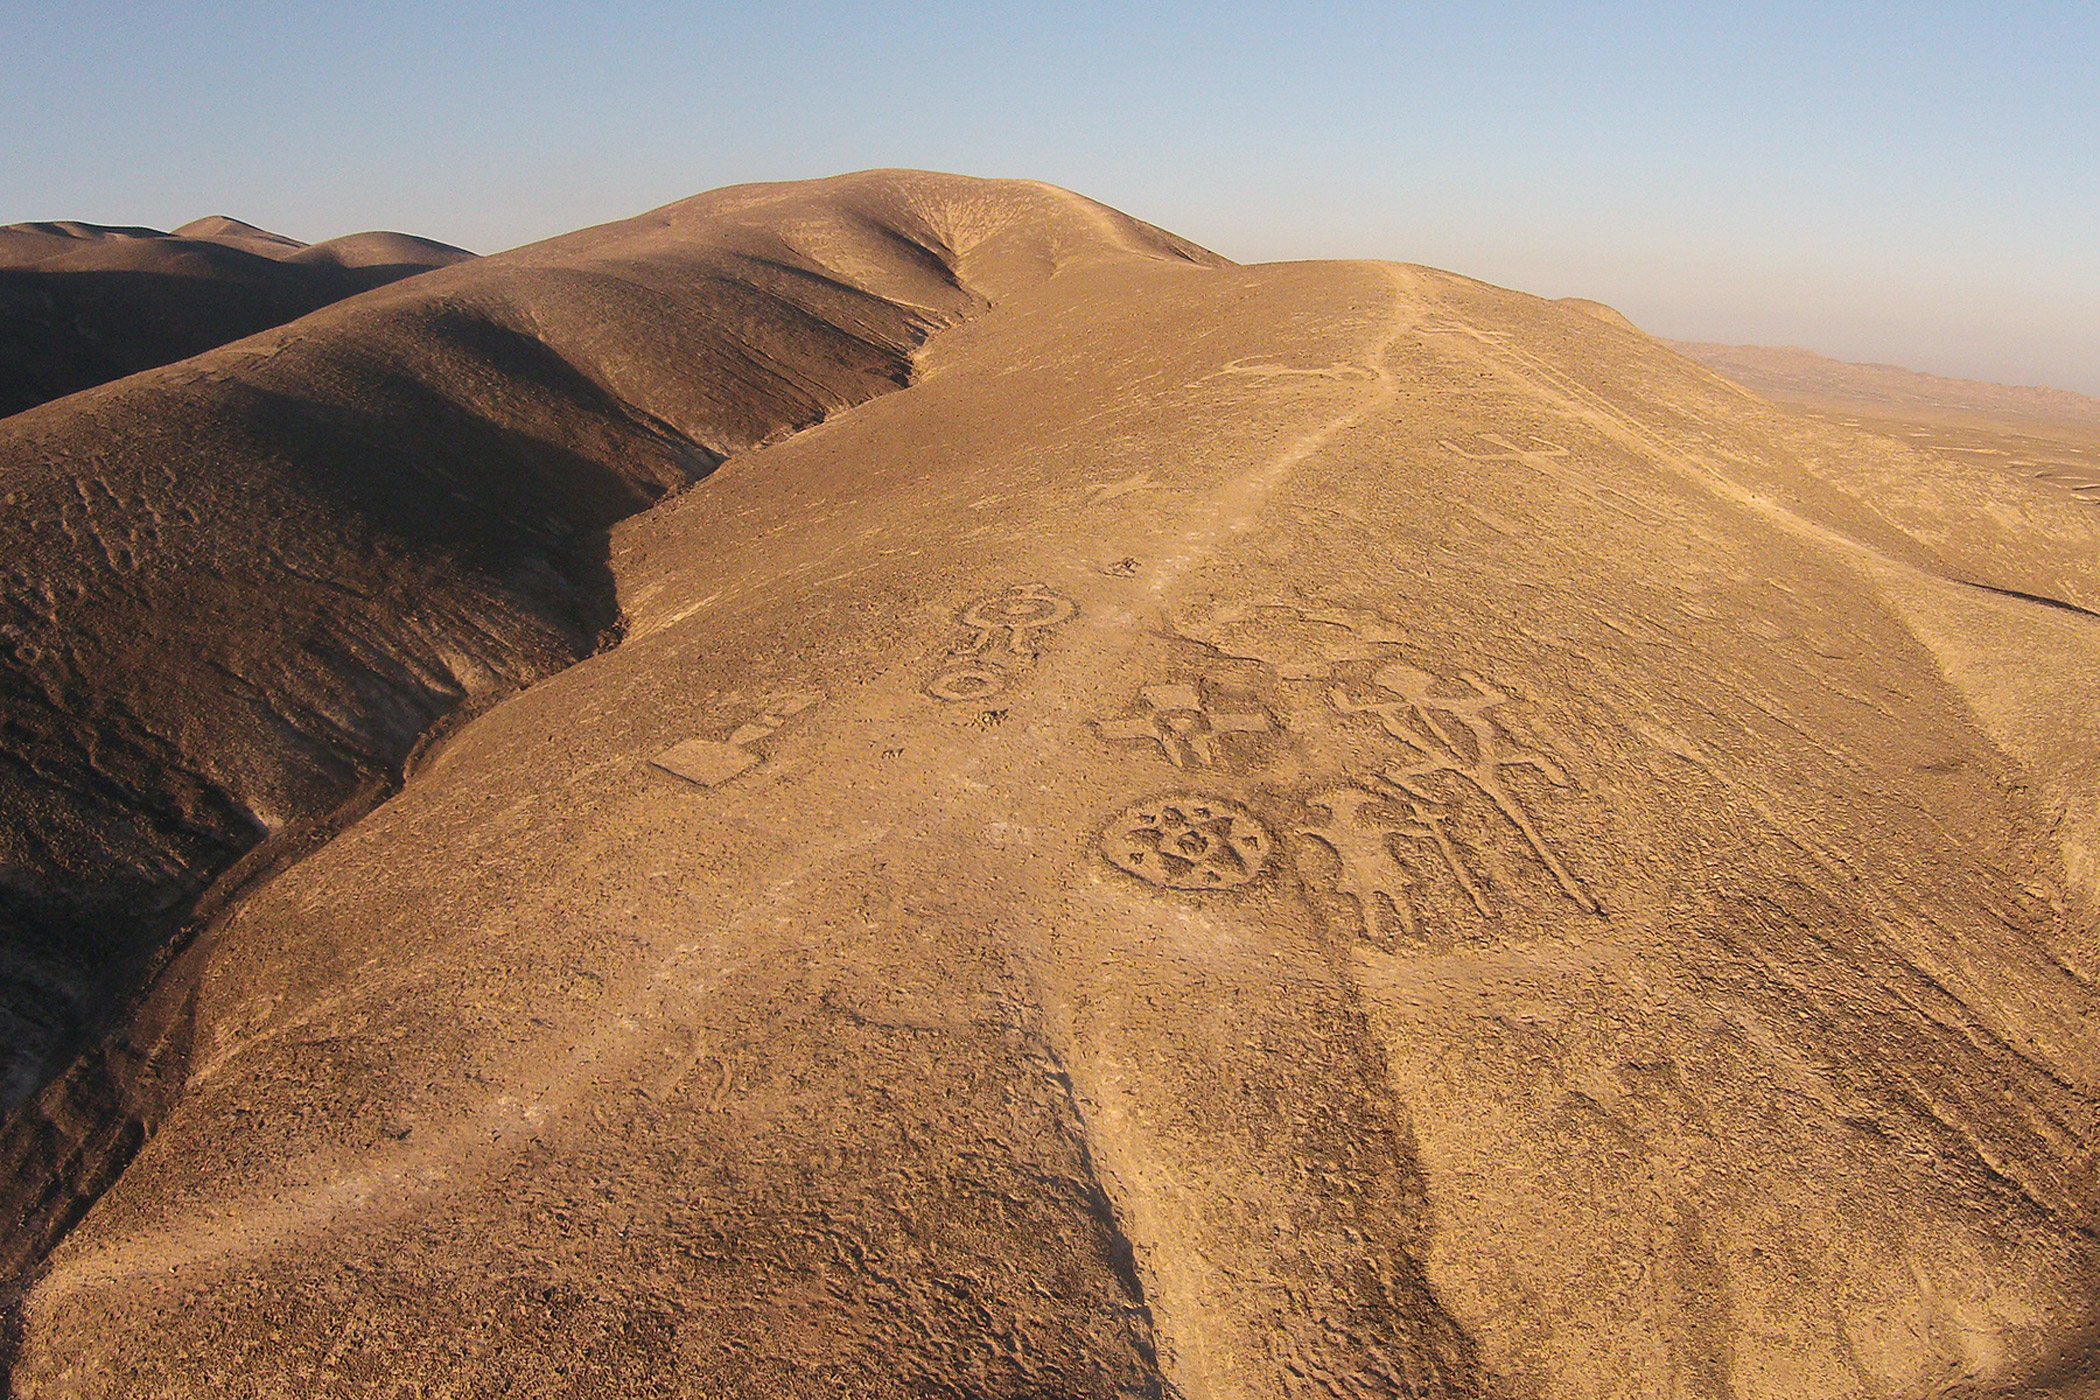 Chile, Chug-Chug                               Geoglyphs: The thousand-year-old geoglyphs depend on the establishment of an archaeological park to protect, preserve, and interpret the site.